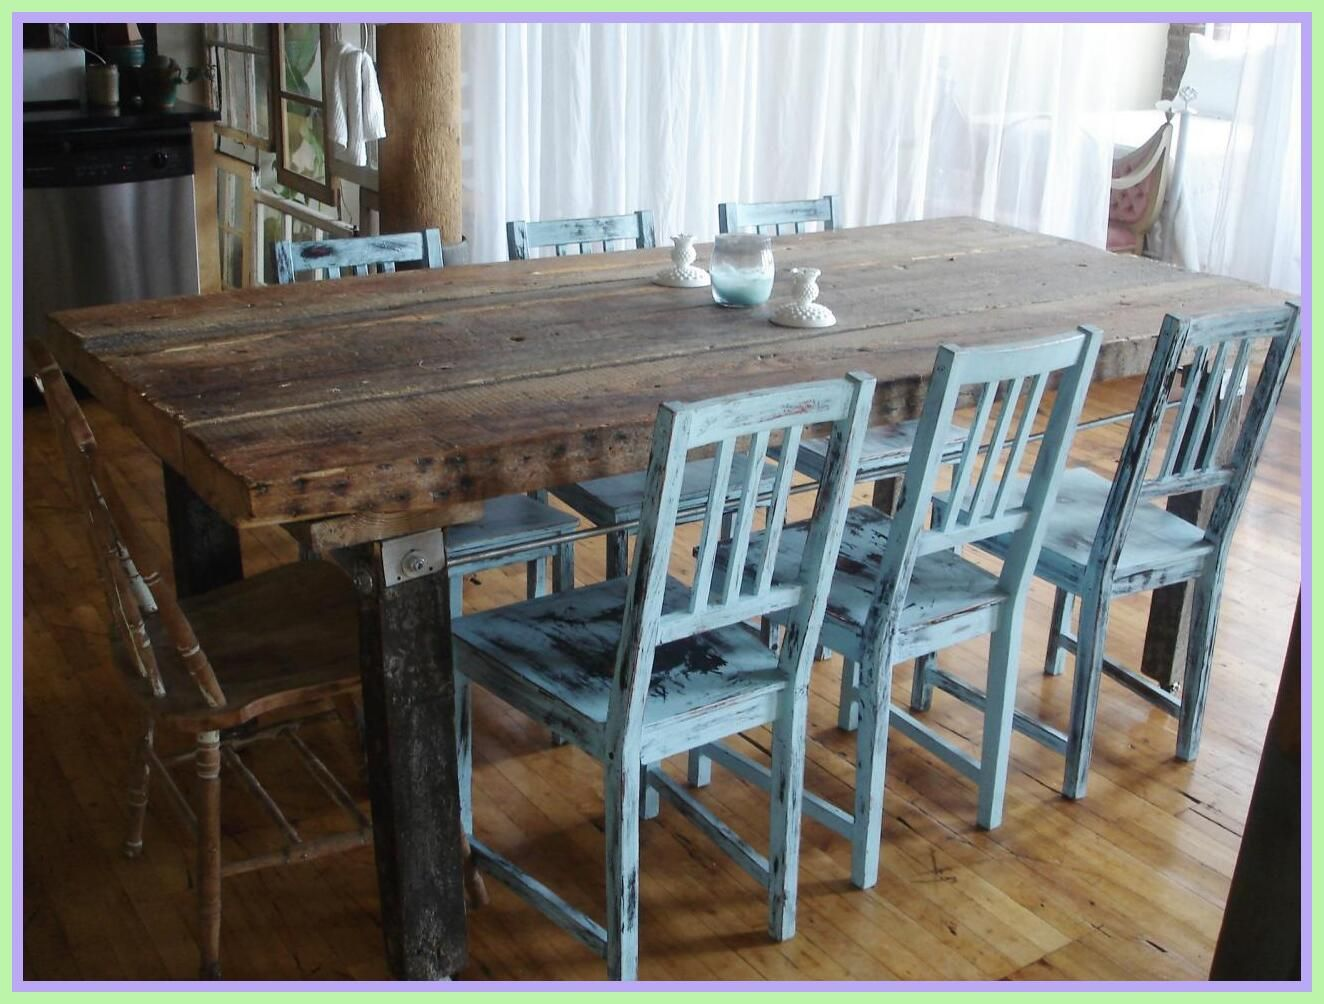 123 Reference Of Blue Dining Chair Wood Rustic Dining Room Table Farmhouse Kitchen Table Sets Distressed Kitchen Tables